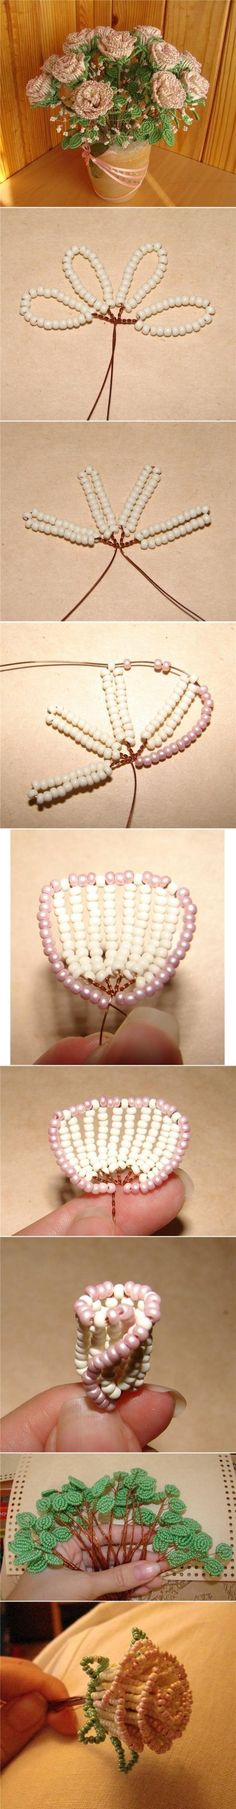 DIY Bead Roses Bouquet via usefuldiy.com